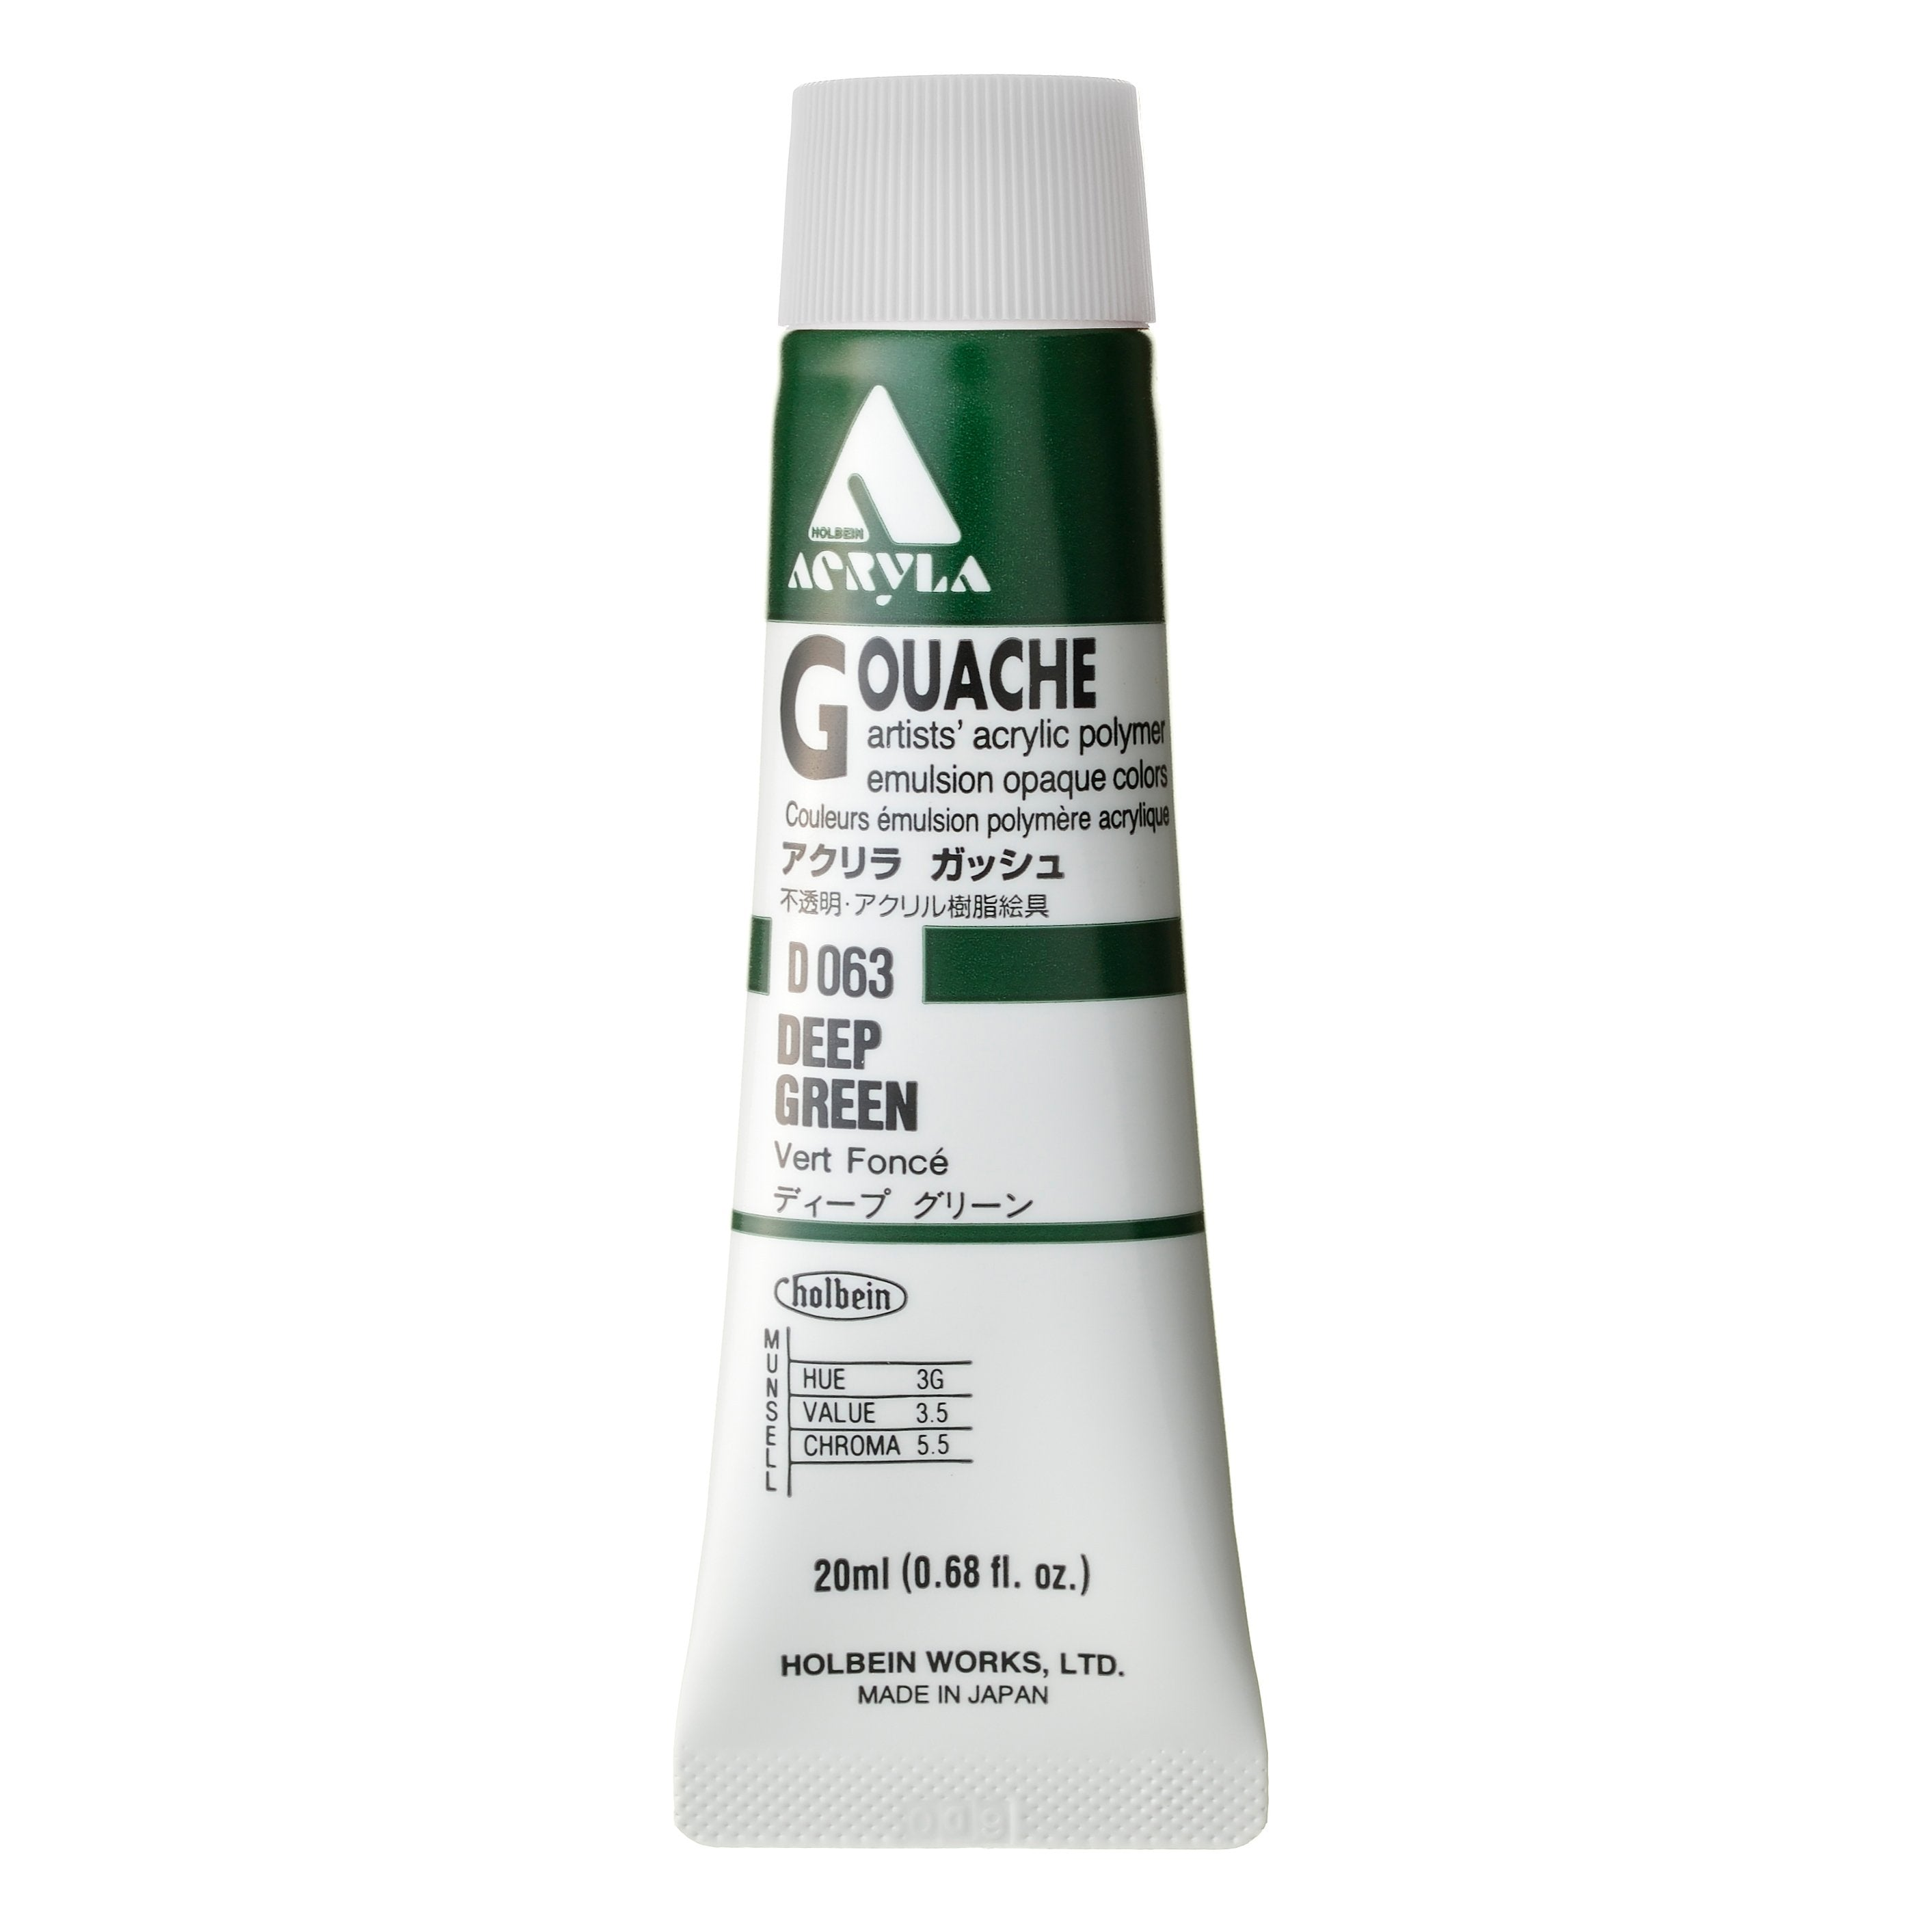 Holbein Acryla Gouache, 20ml, Deep Green